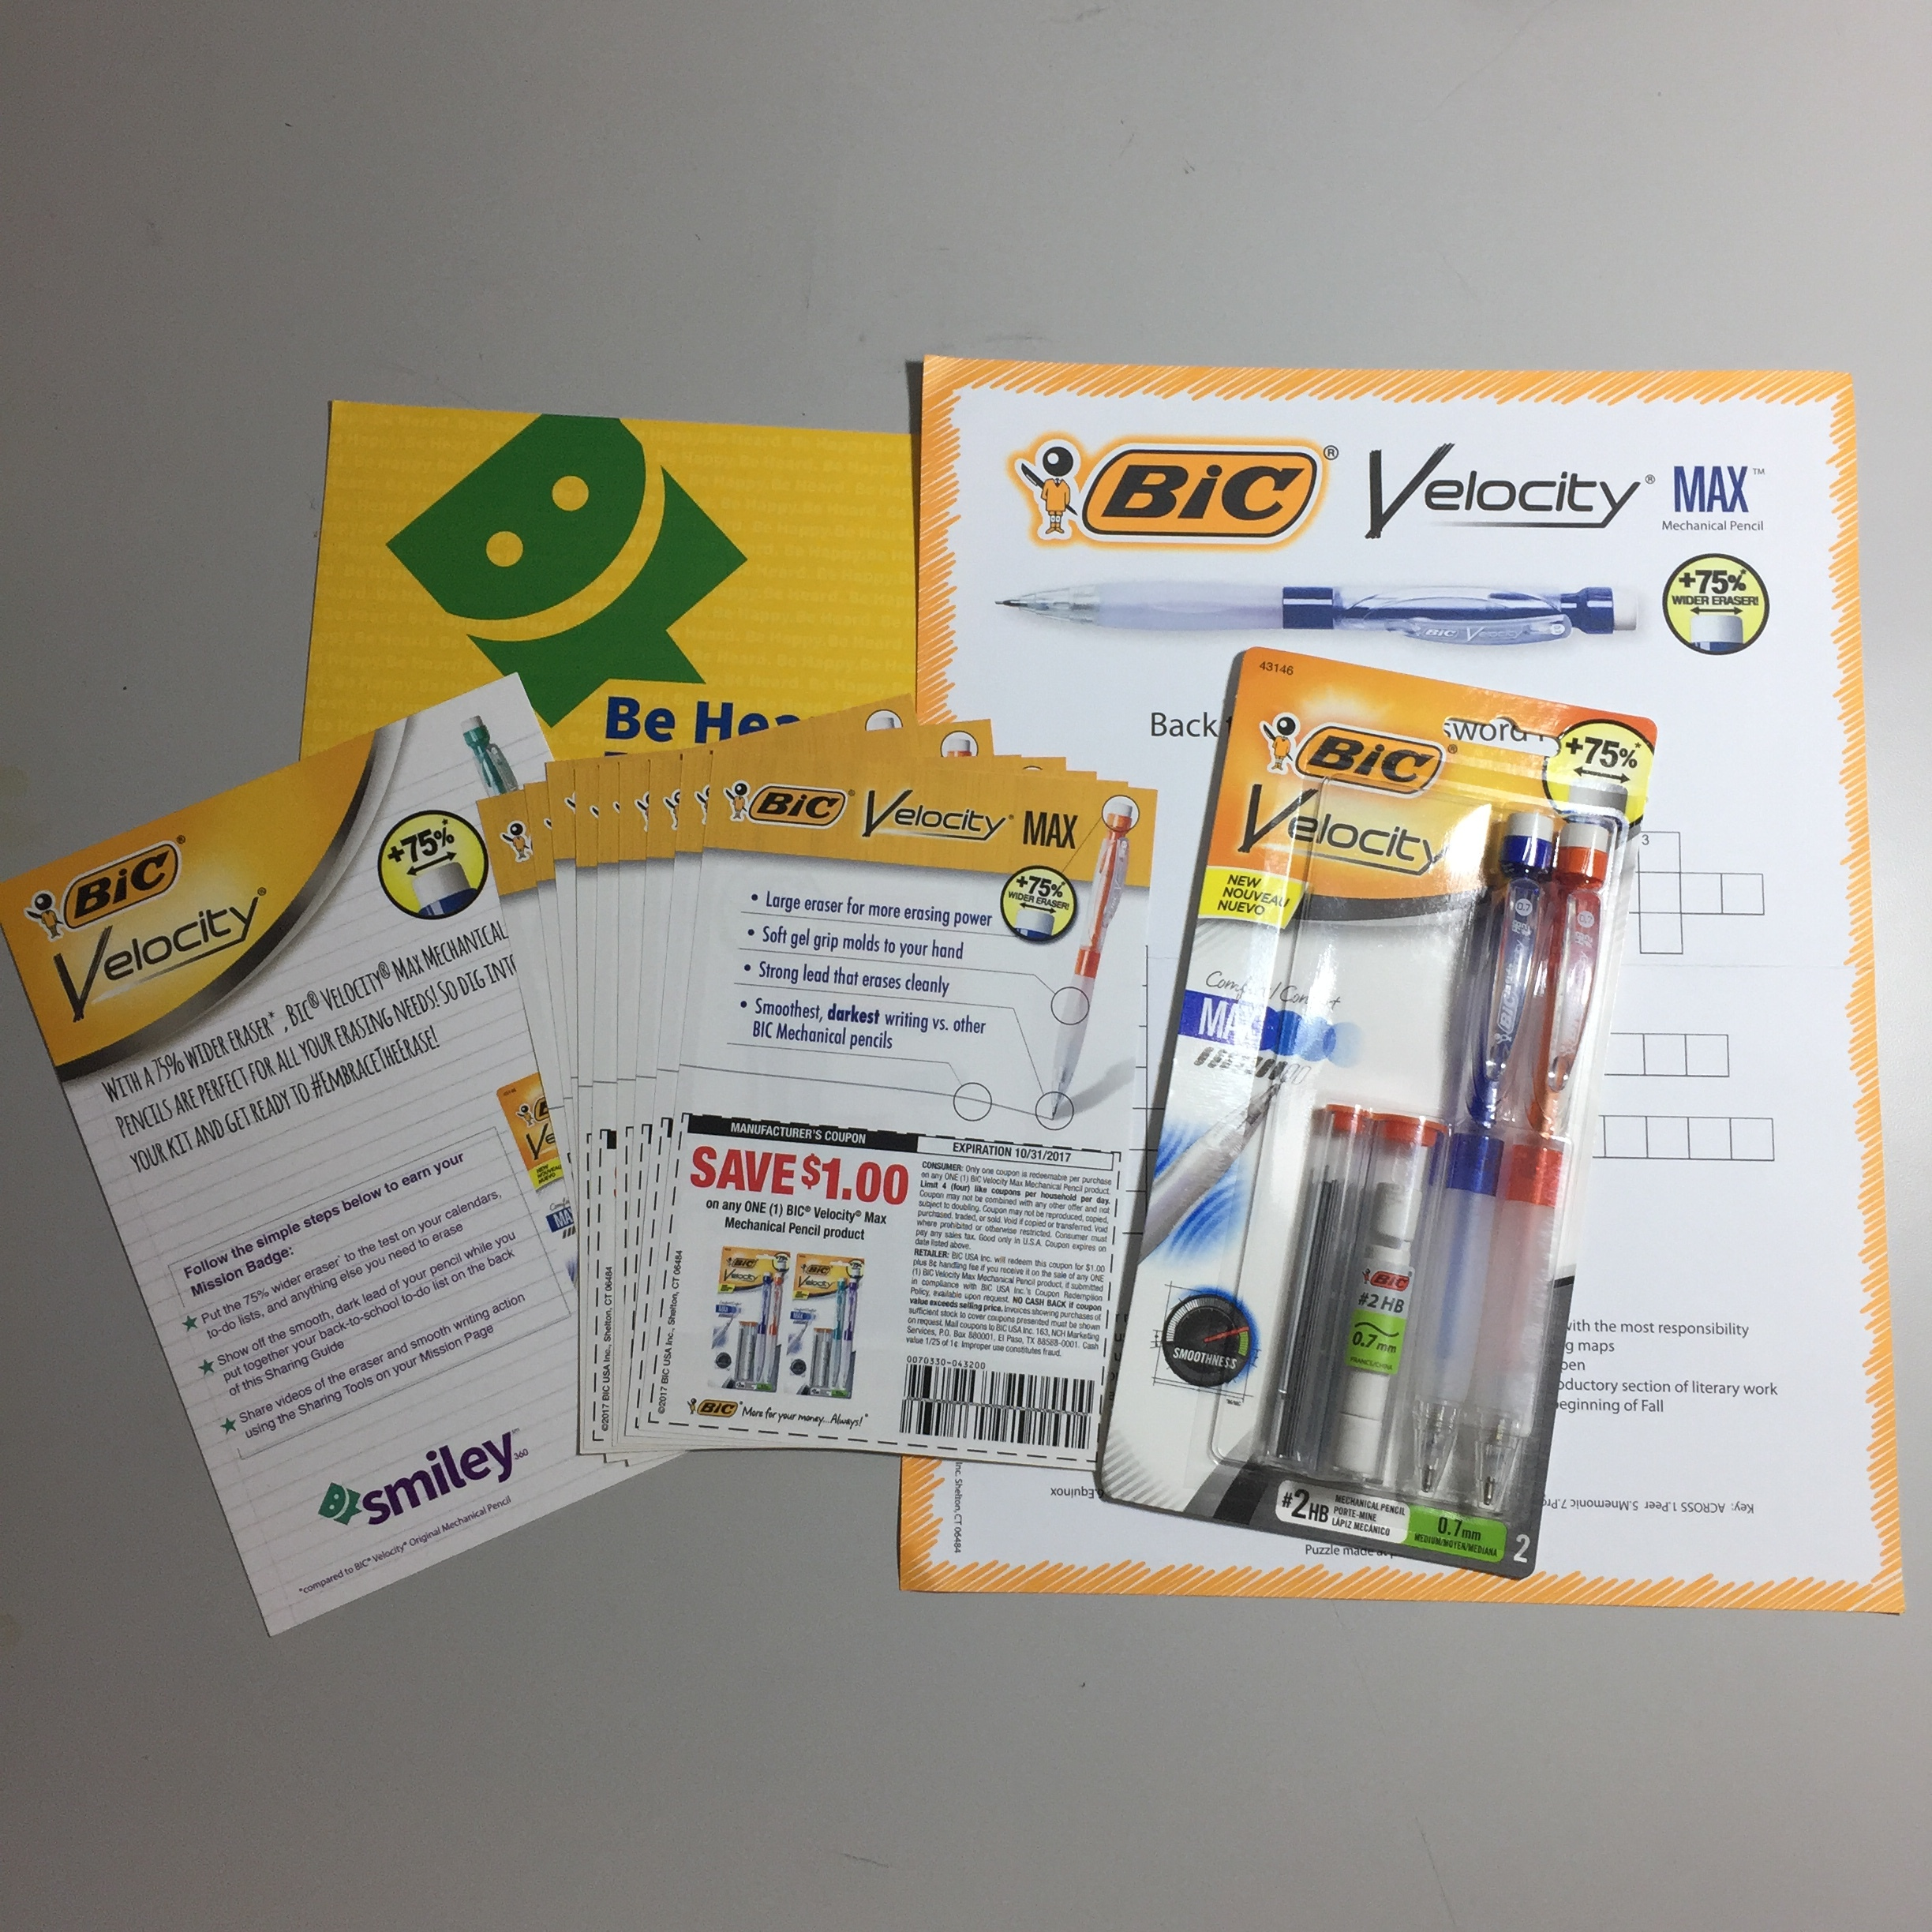 Here's what was in my #FreeSample from Smiley360 and BIC:2-pack BIC® Velocity® Max 0.7mm Mechanical Pencils, 10 Coupons to share with friends, Crossword Puzzle.